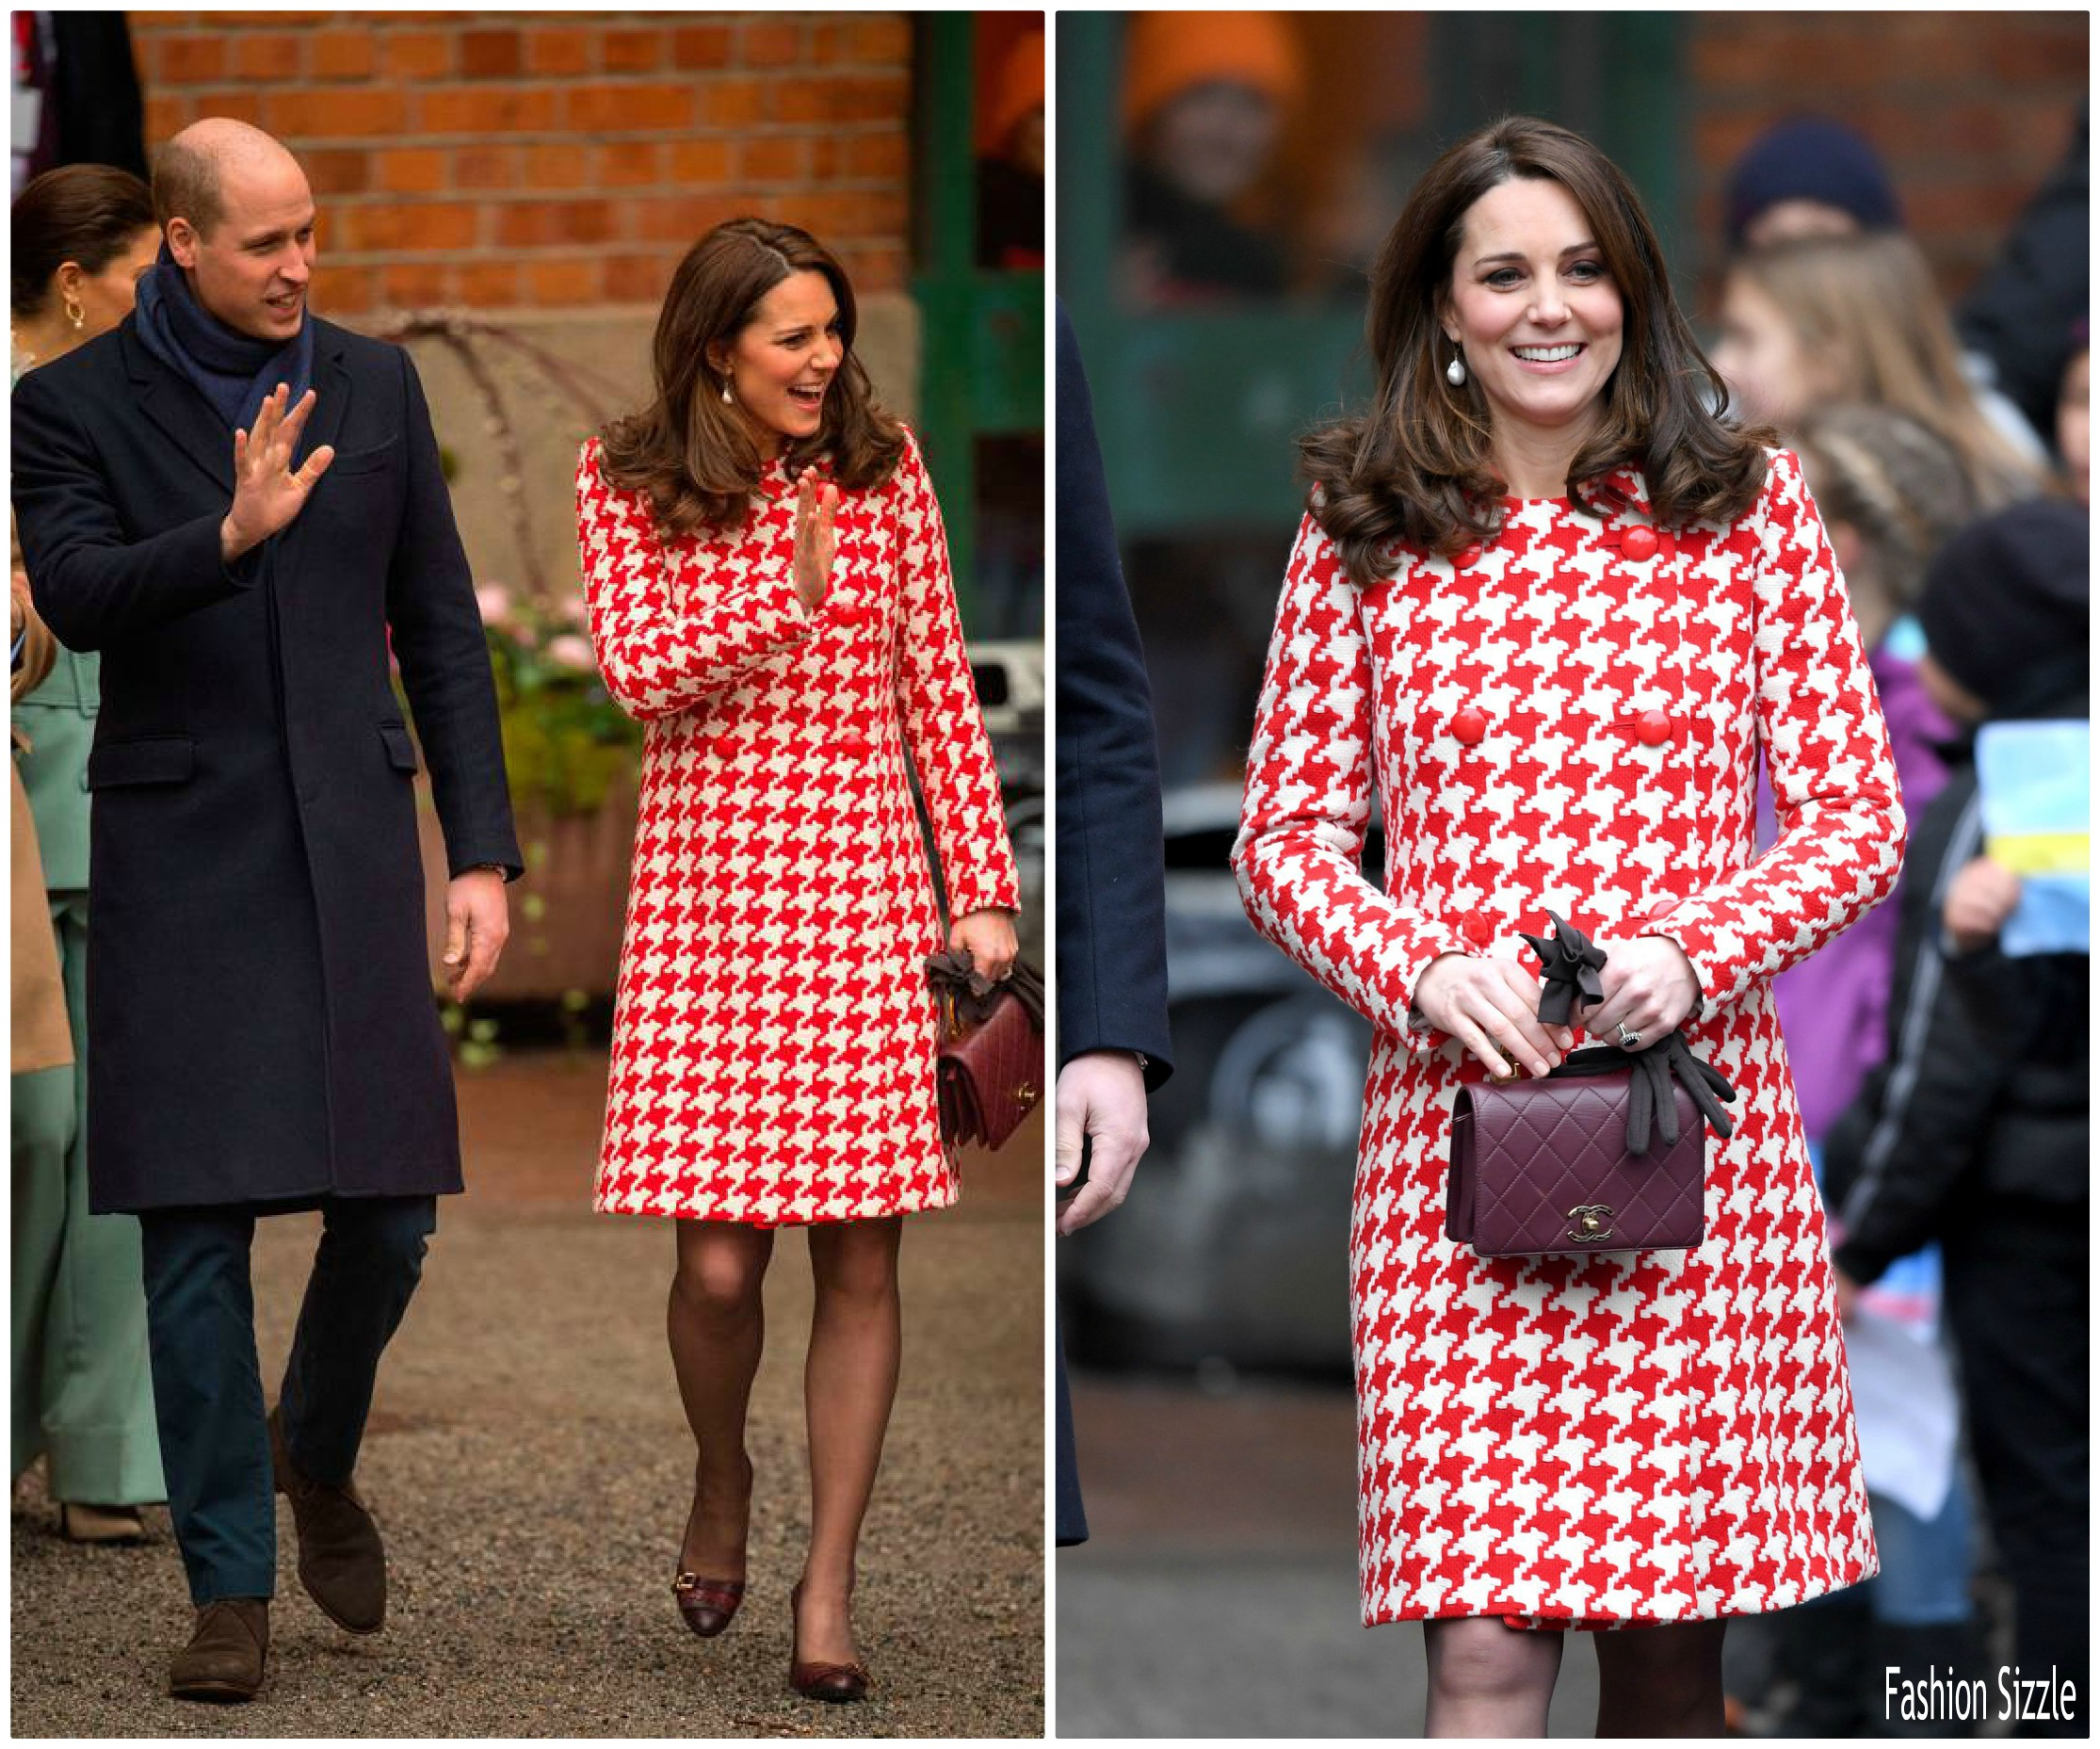 duchess-of-cambridge-in-catherine-walker-visit-to-sweden-day-2